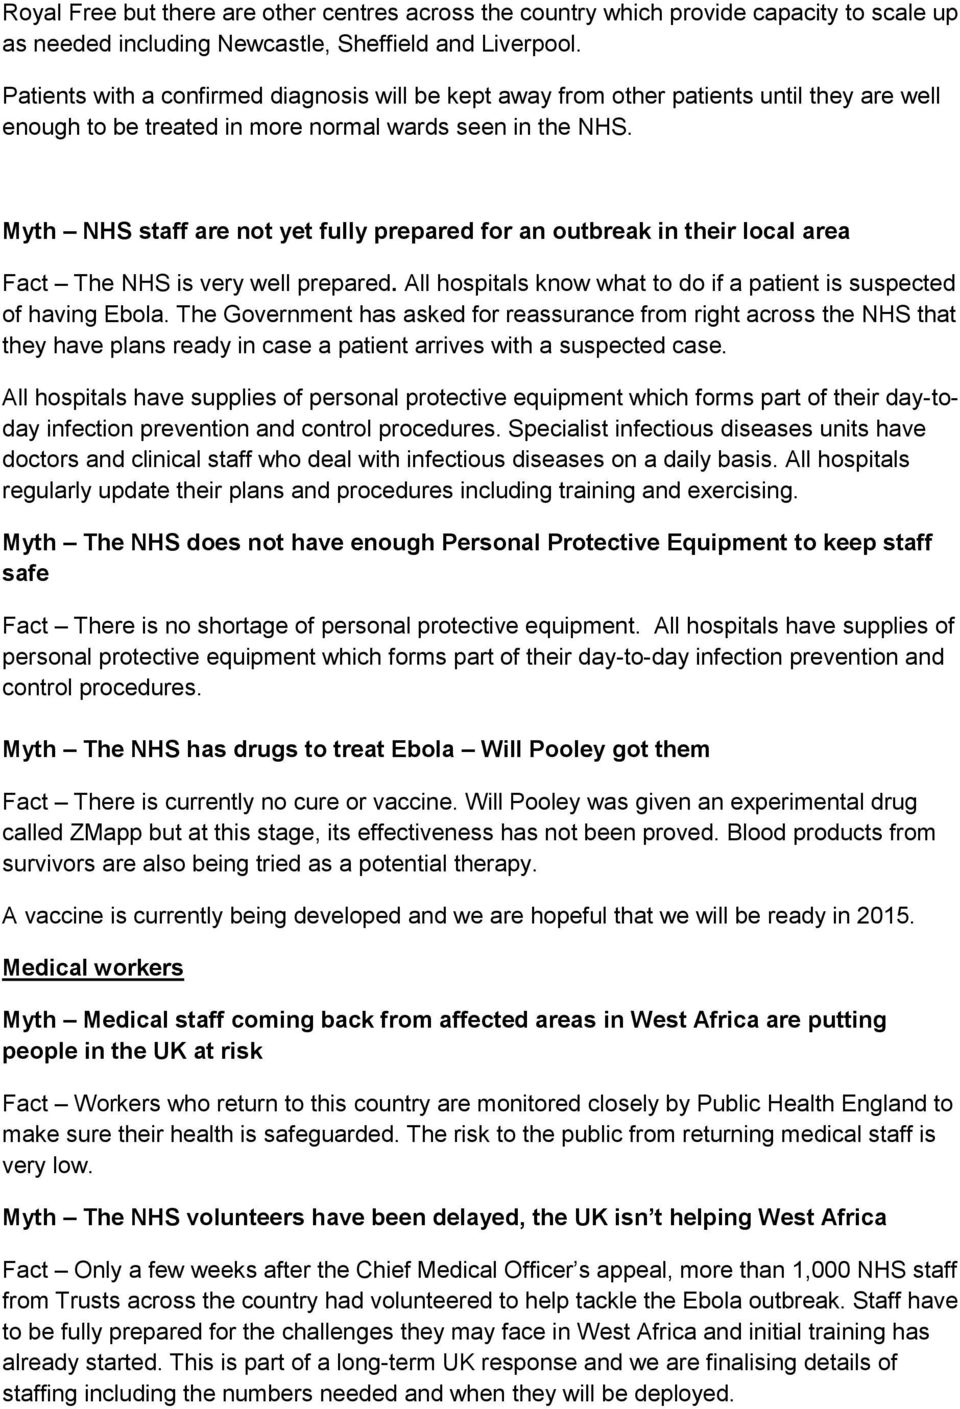 Myth NHS staff are not yet fully prepared for an outbreak in their local area Fact The NHS is very well prepared. All hospitals know what to do if a patient is suspected of having Ebola.